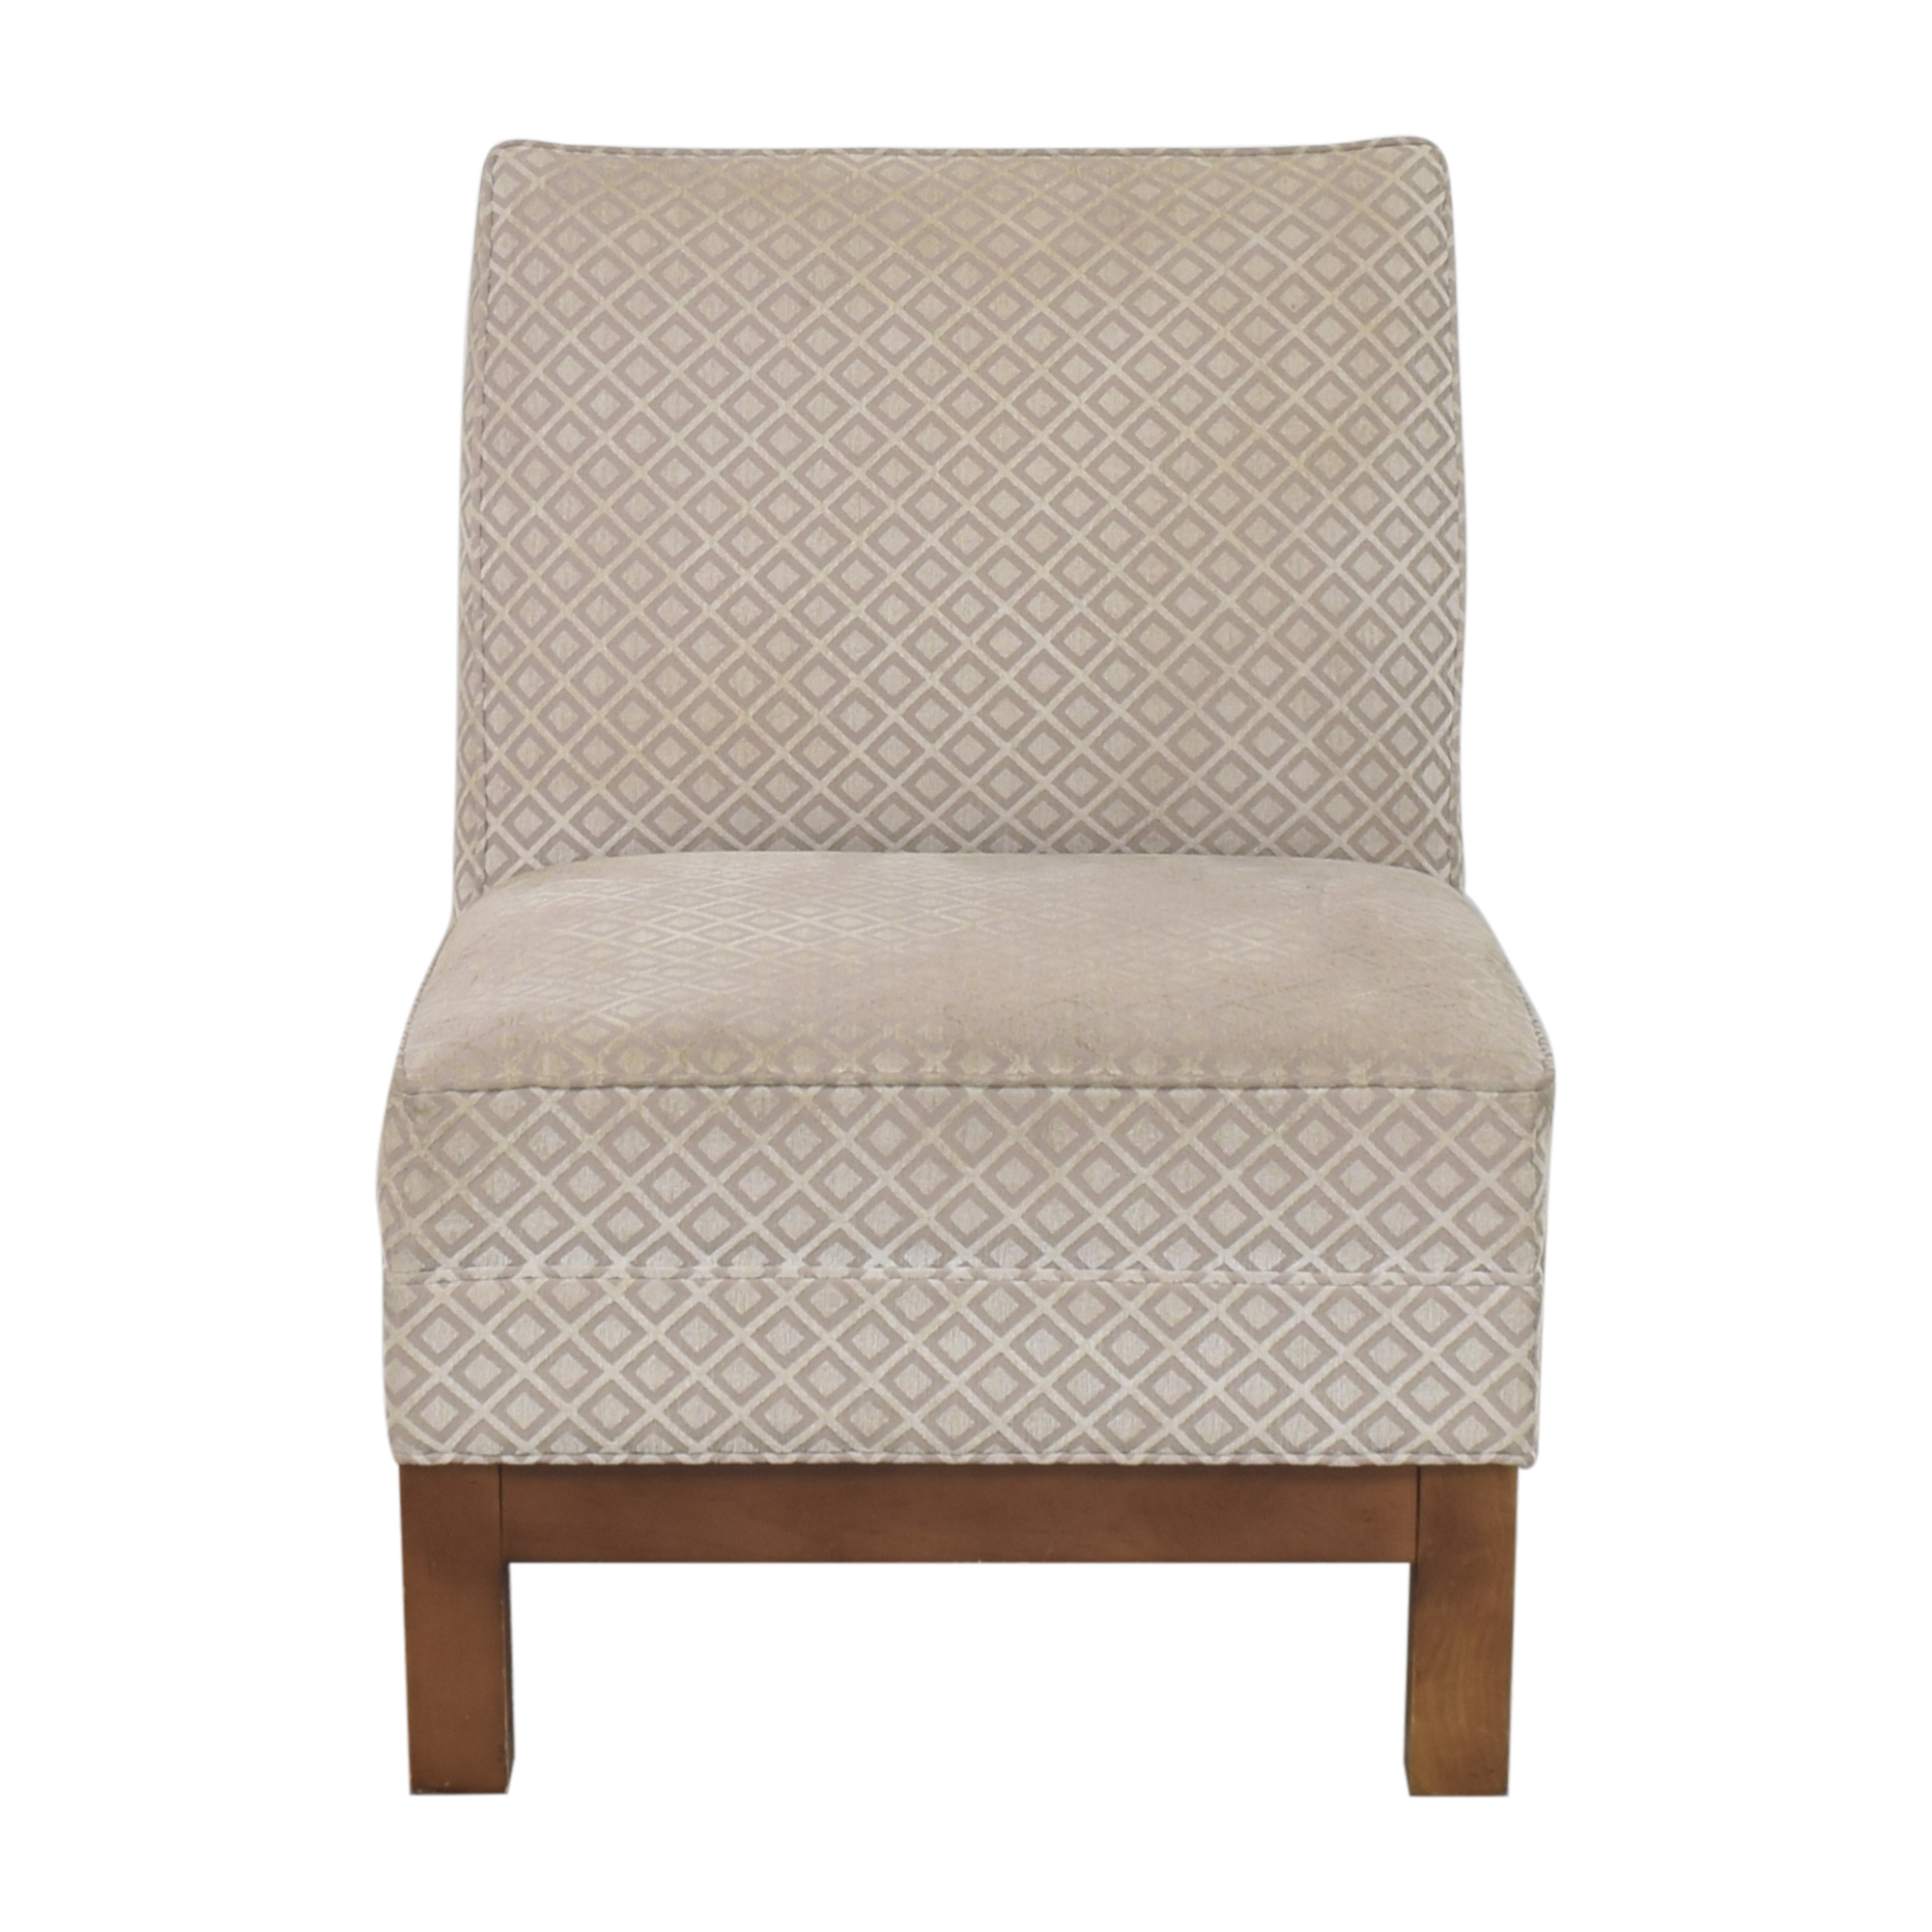 Mitchell Gold + Bob Williams Mitchell Gold + Bob Williams Slipper Chair price